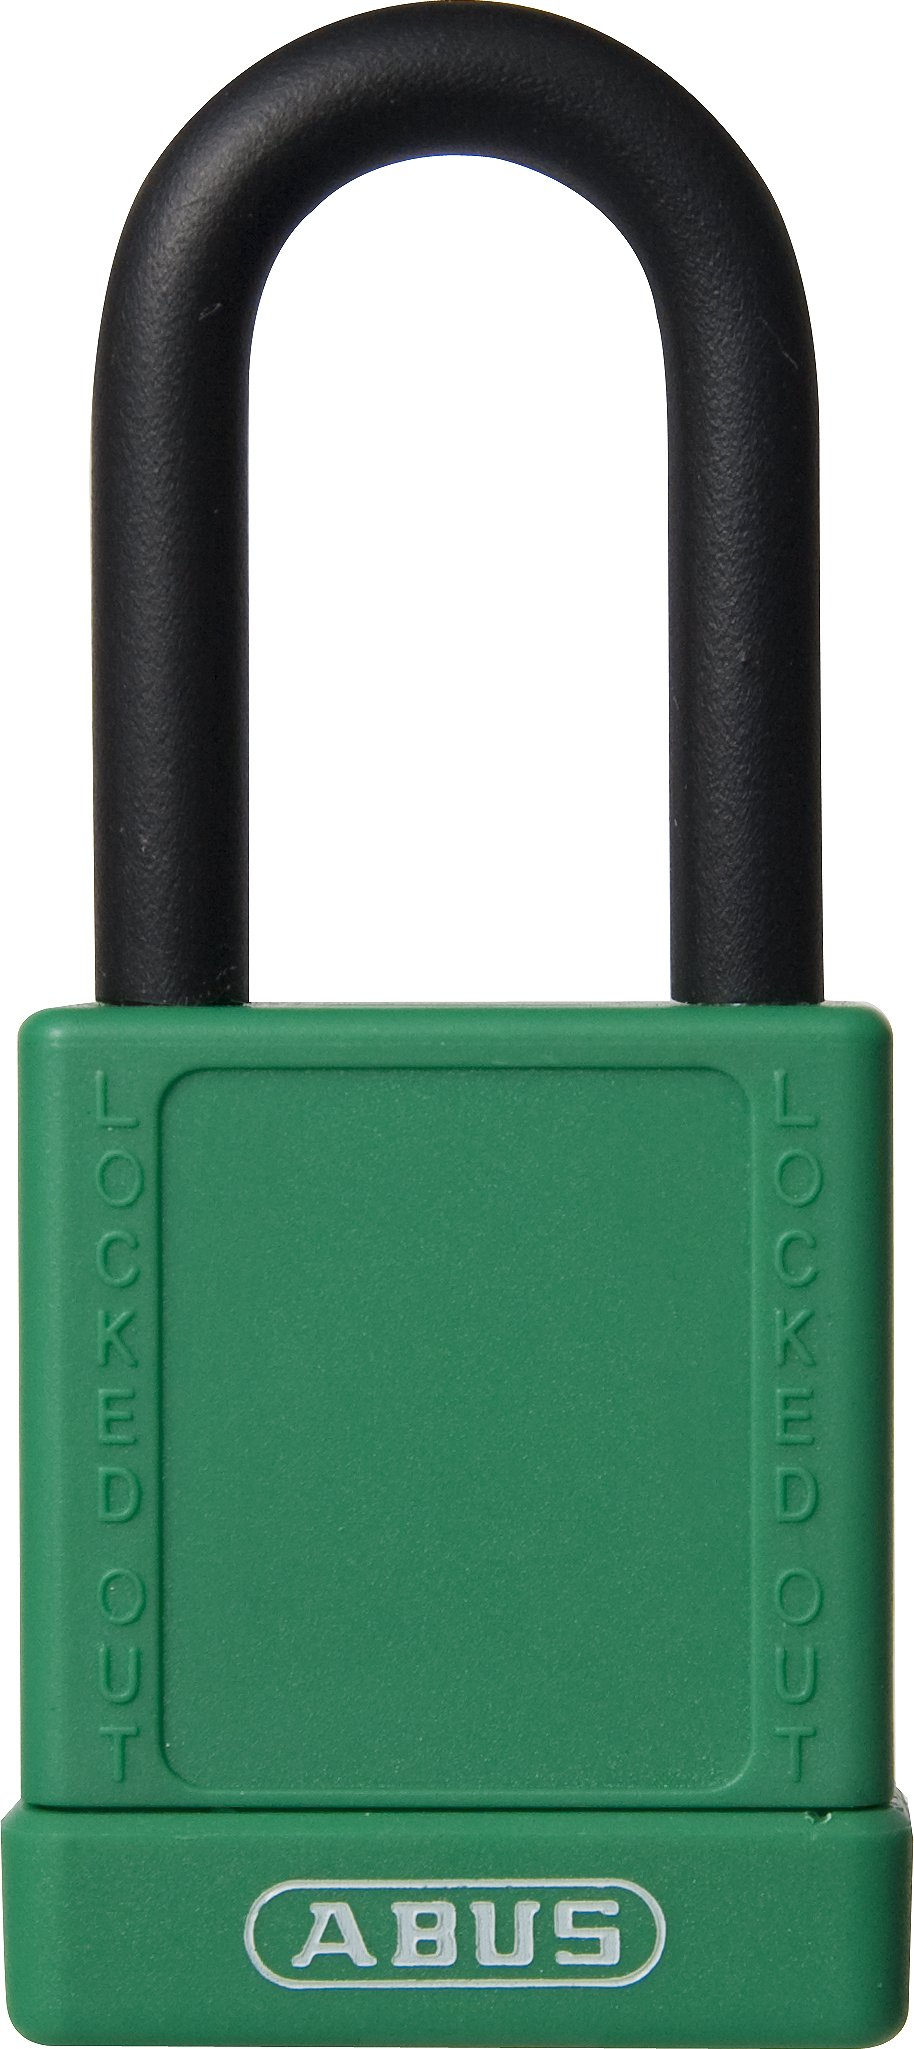 ABUS 74/40 KD Safety Lockout Non-Conductive Keyed Different Padlock with 1-1/2-Inch Shackle, Green